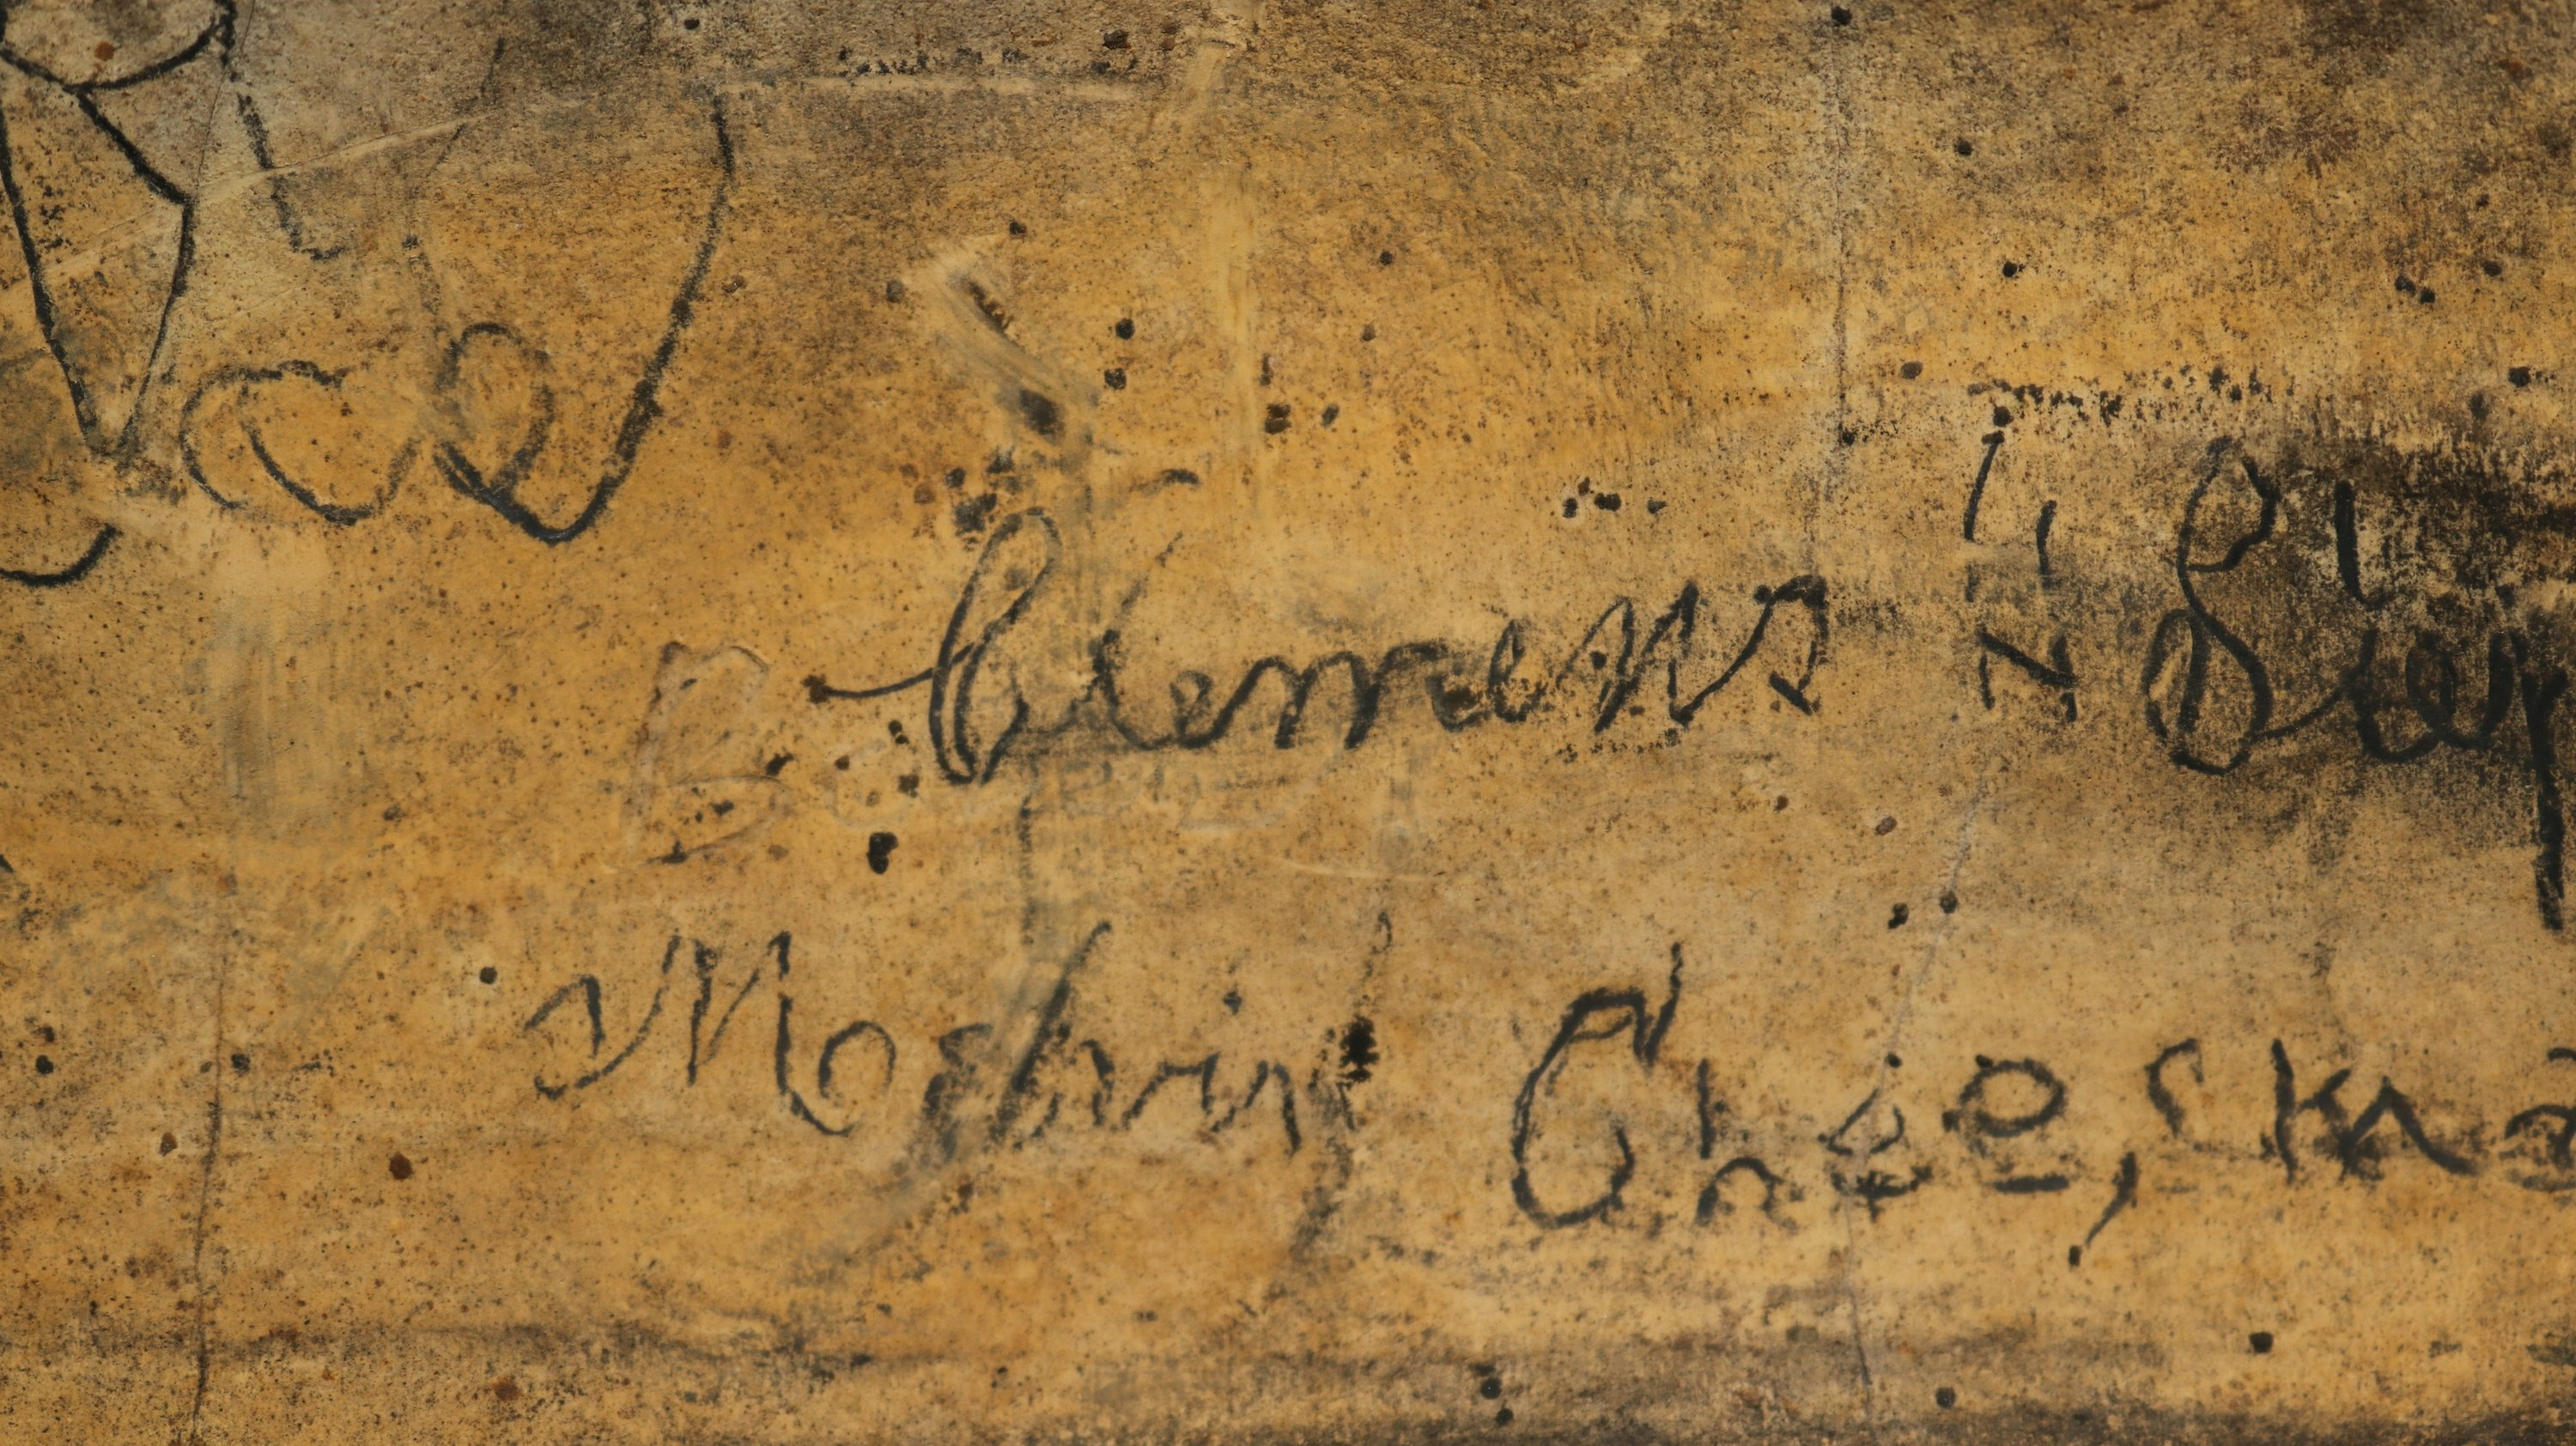 Sam Clemens' signature appears to be on Mark Twain Cave wall